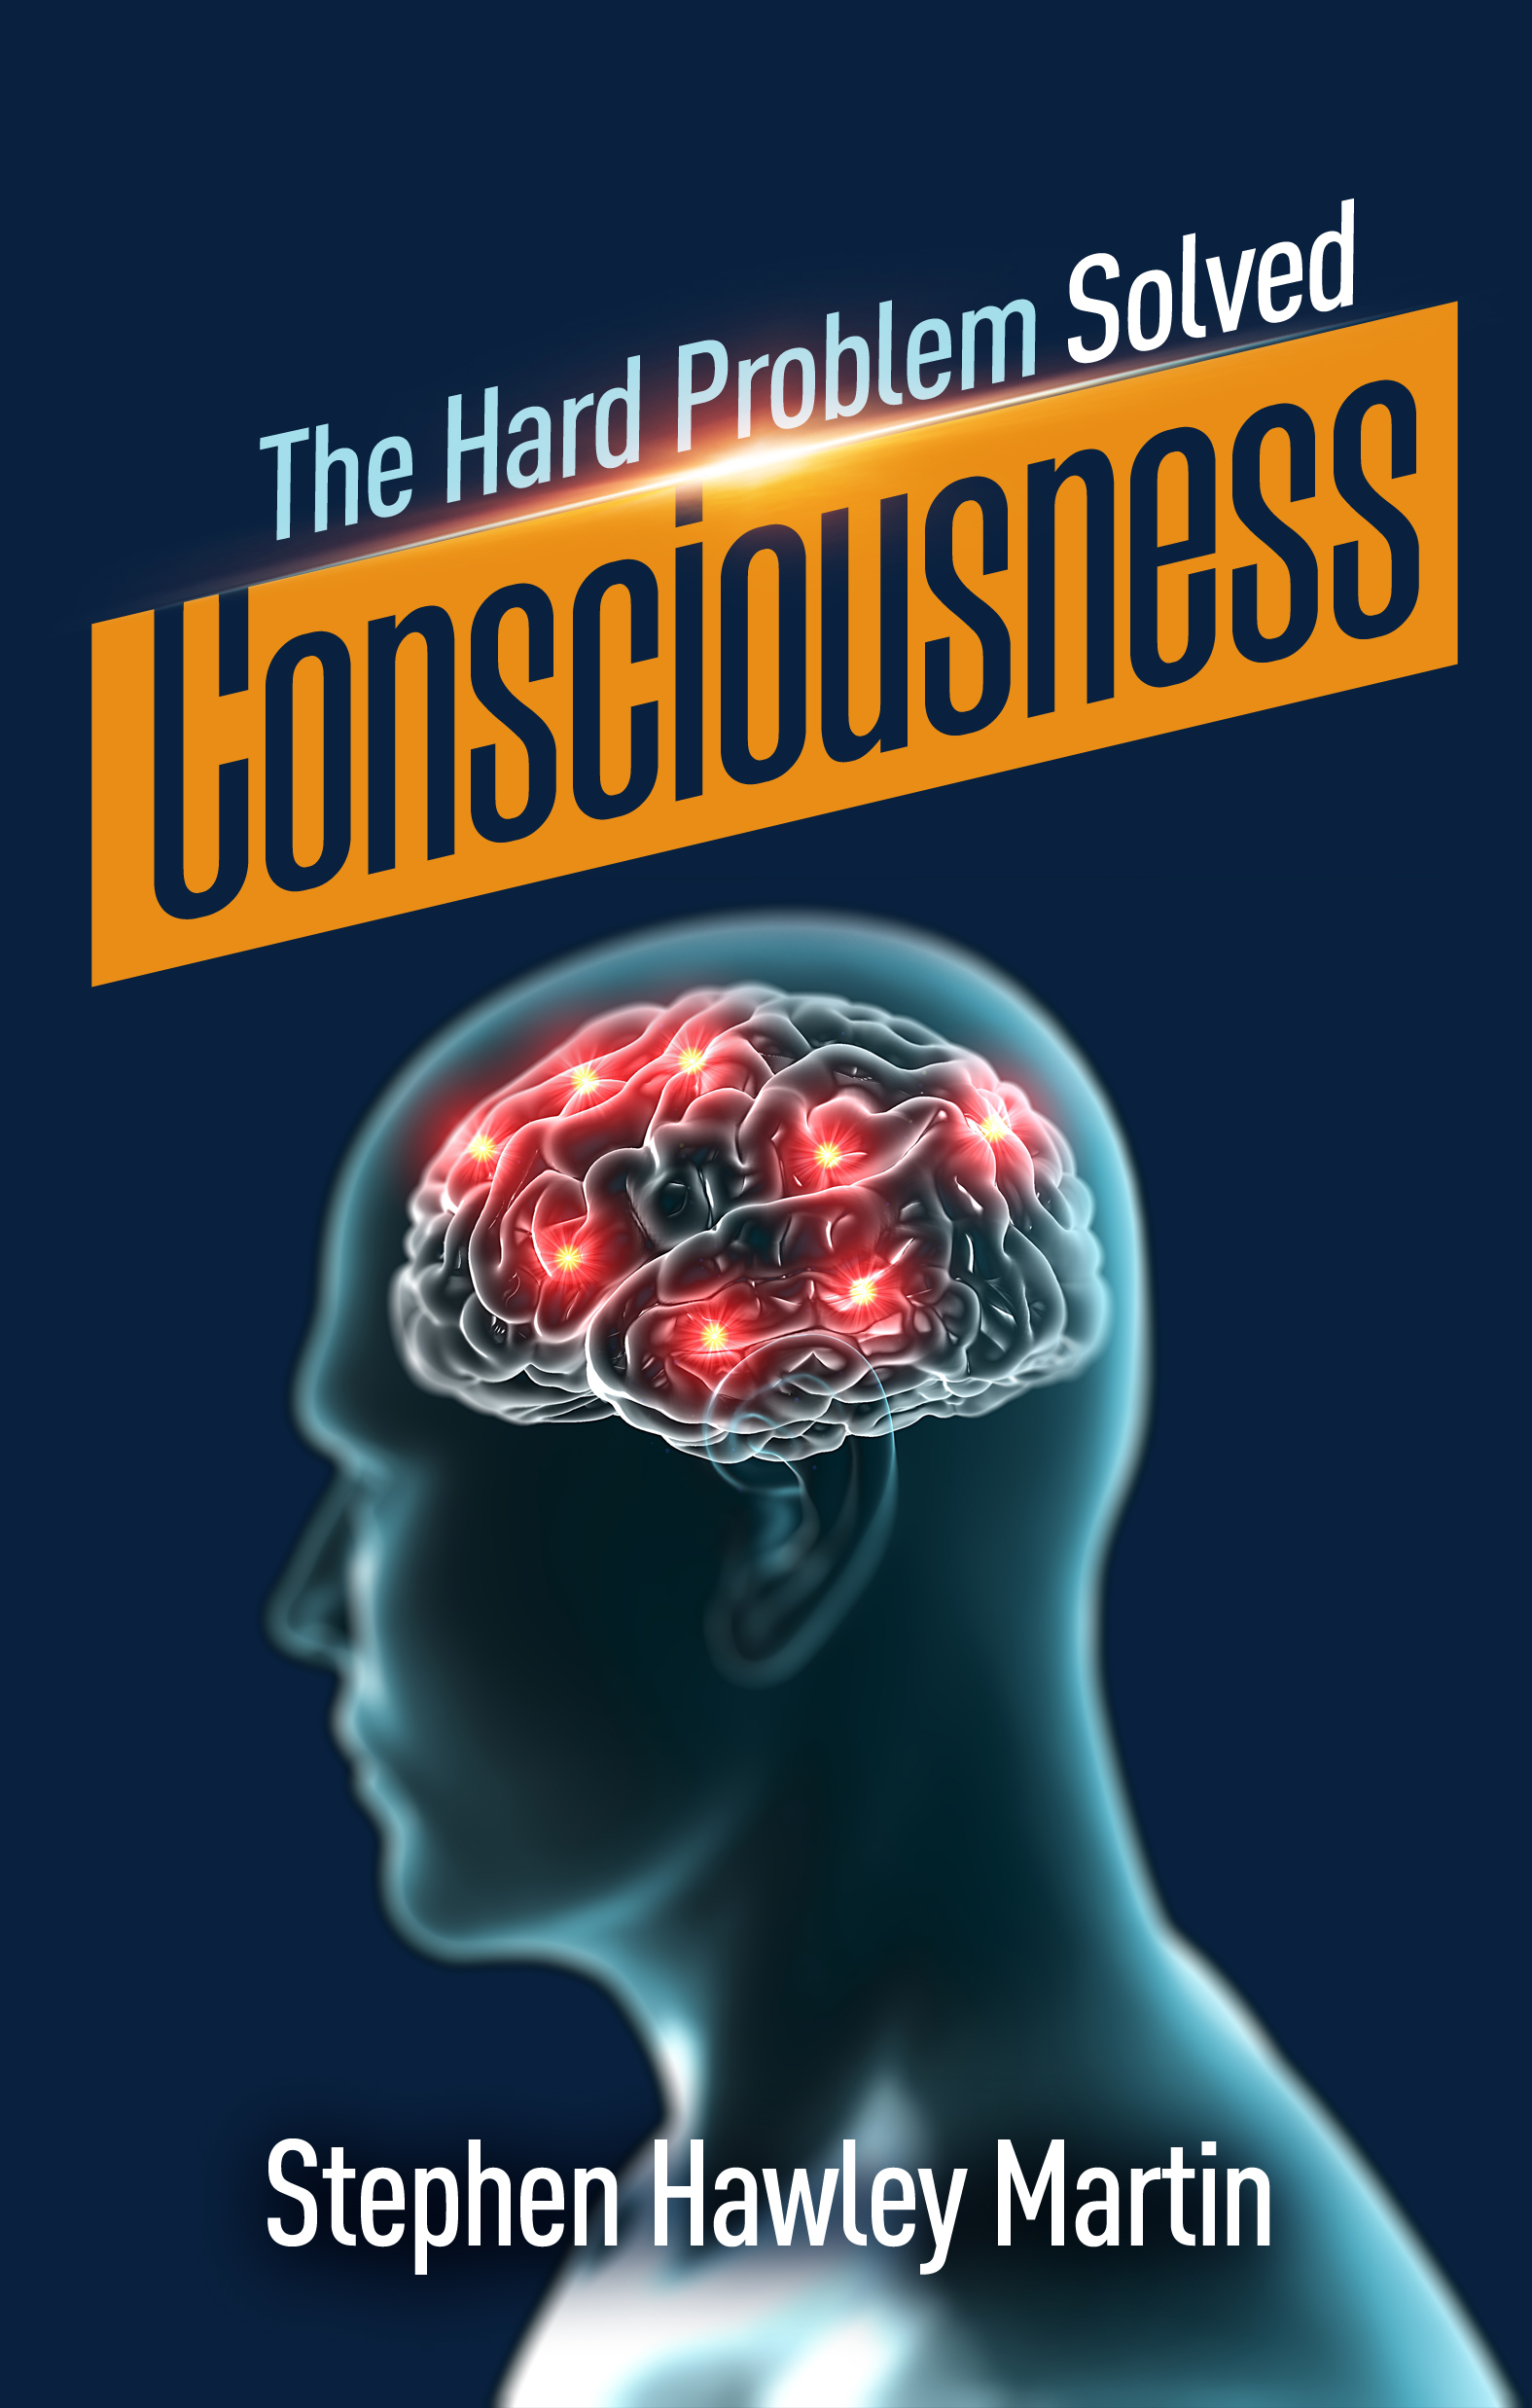 New Book Explaining the Origin of Consciousness is Now a Bestseller in the Neuroscience Category on Amazon